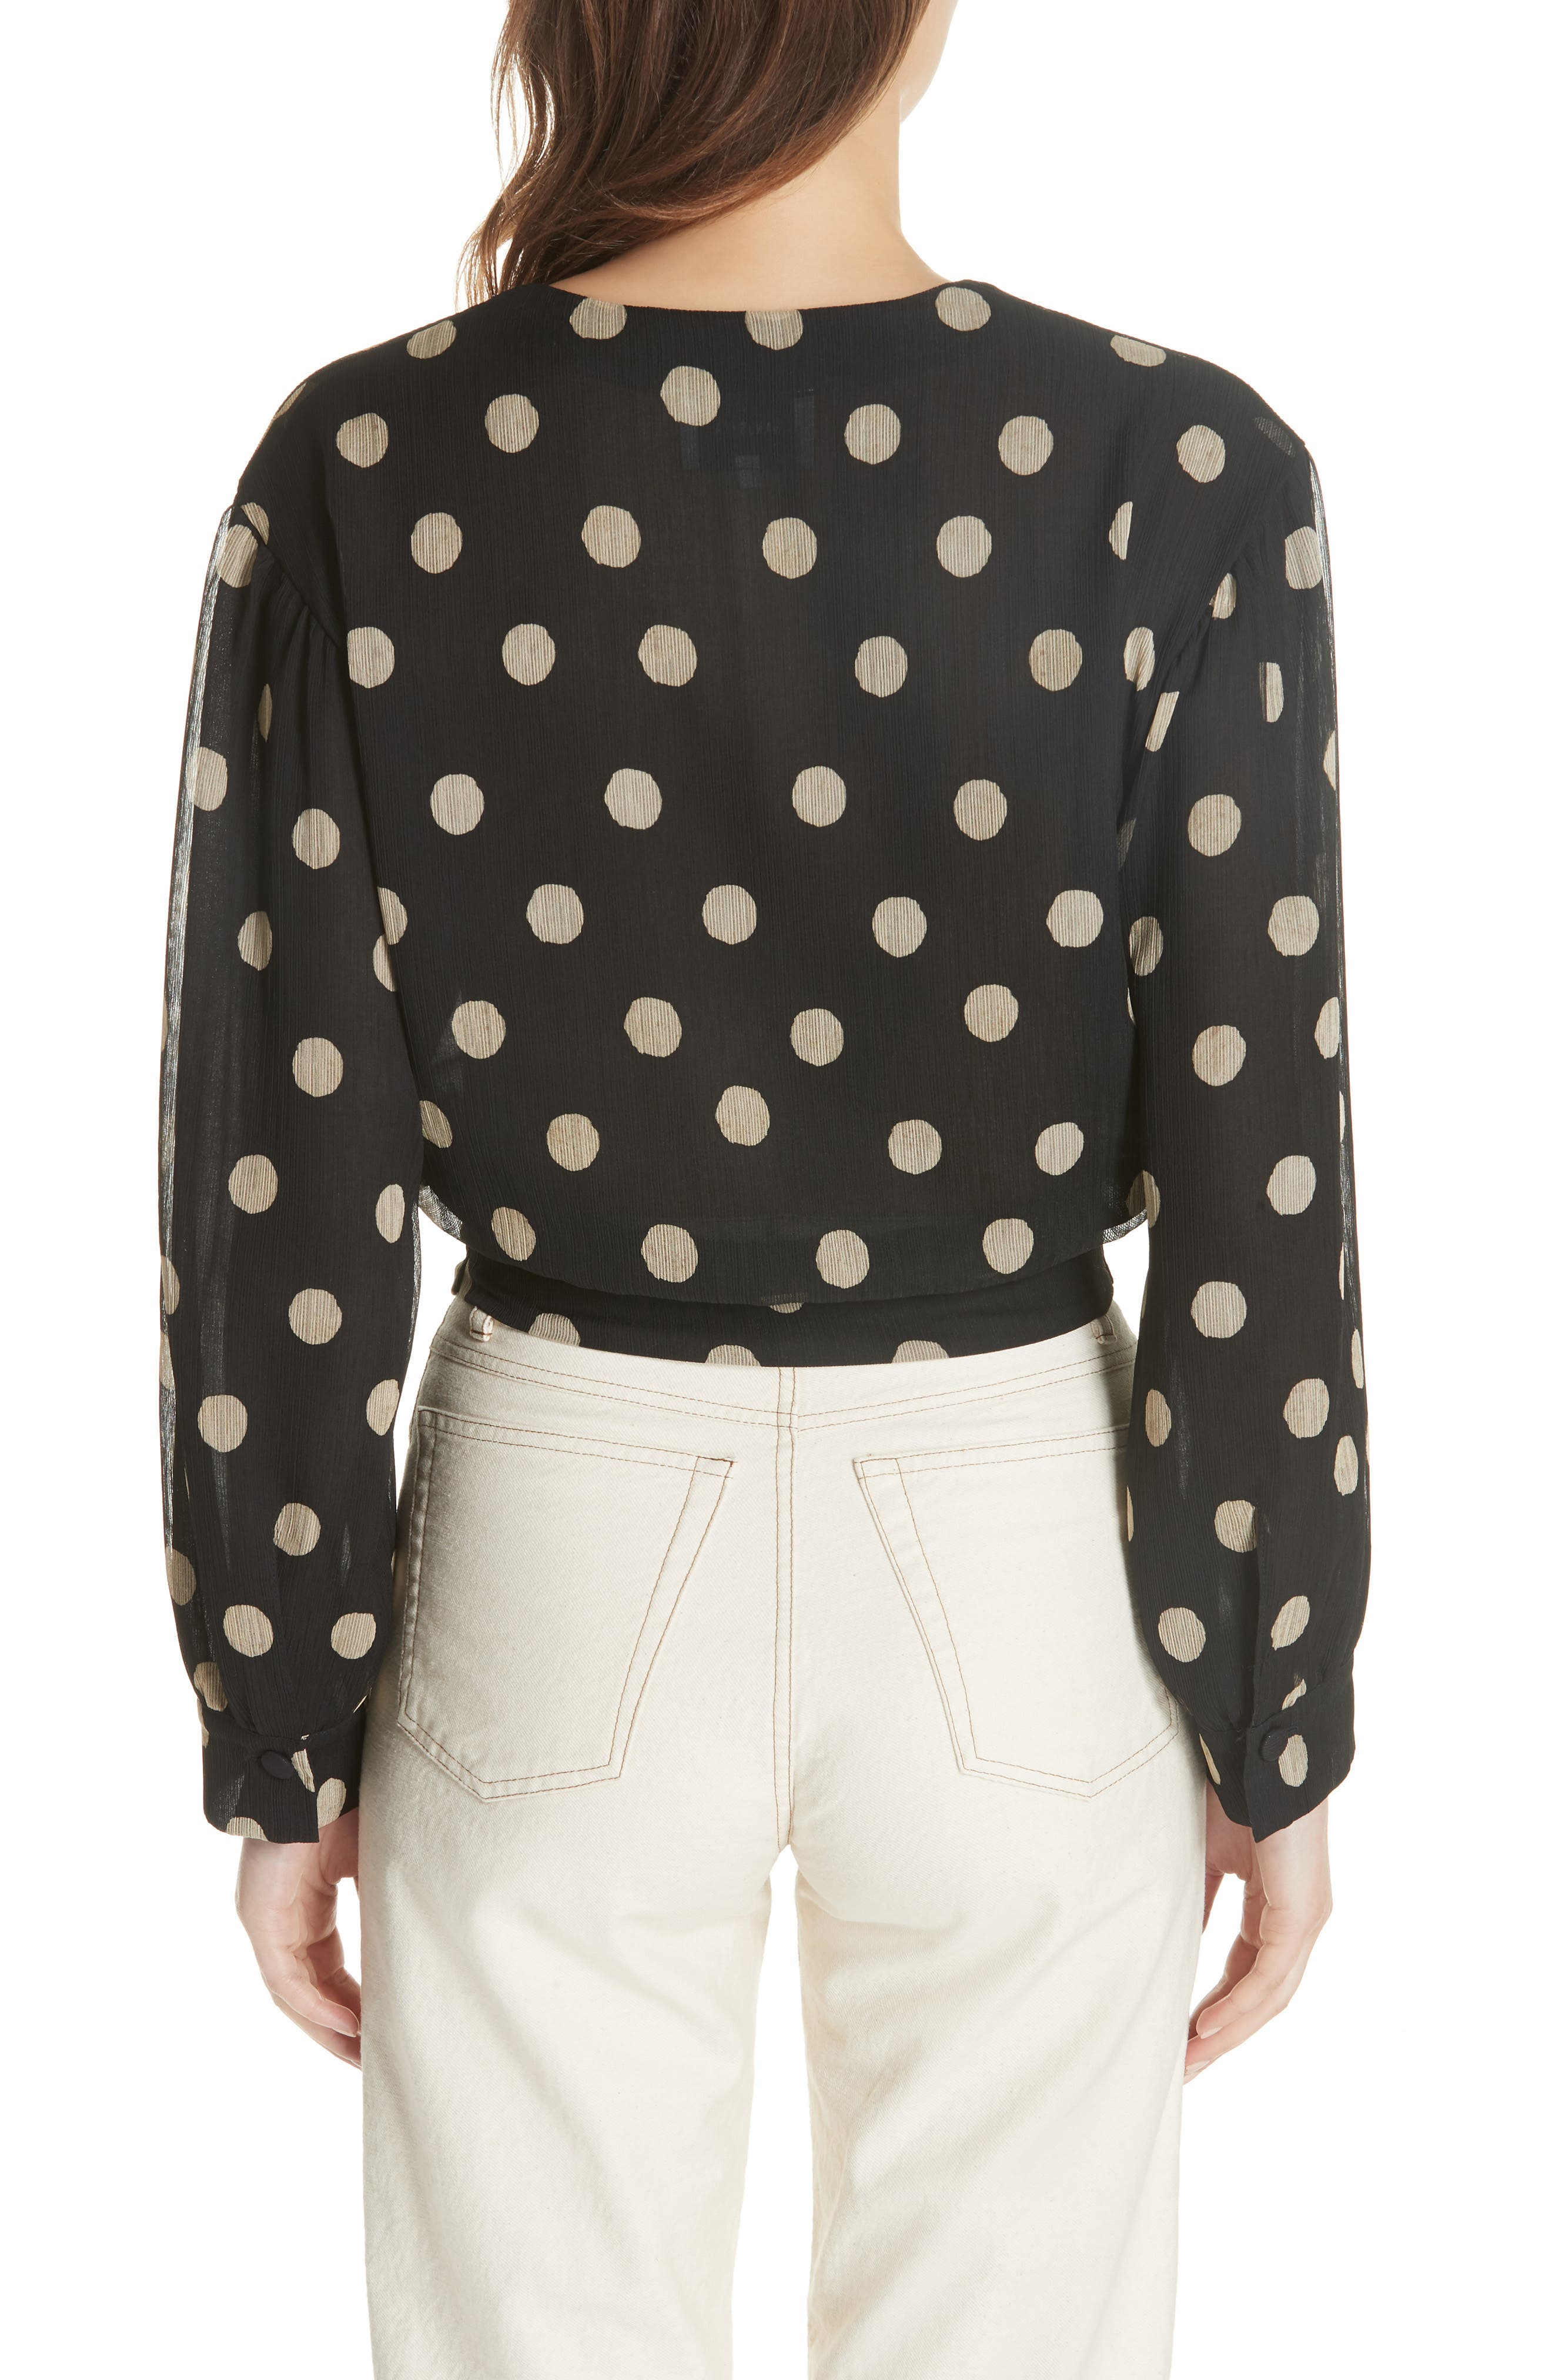 NANUSHKA,                             Amulet Polka Dot Tech Chiffon Blouse,                             Alternate thumbnail 2, color,                             001